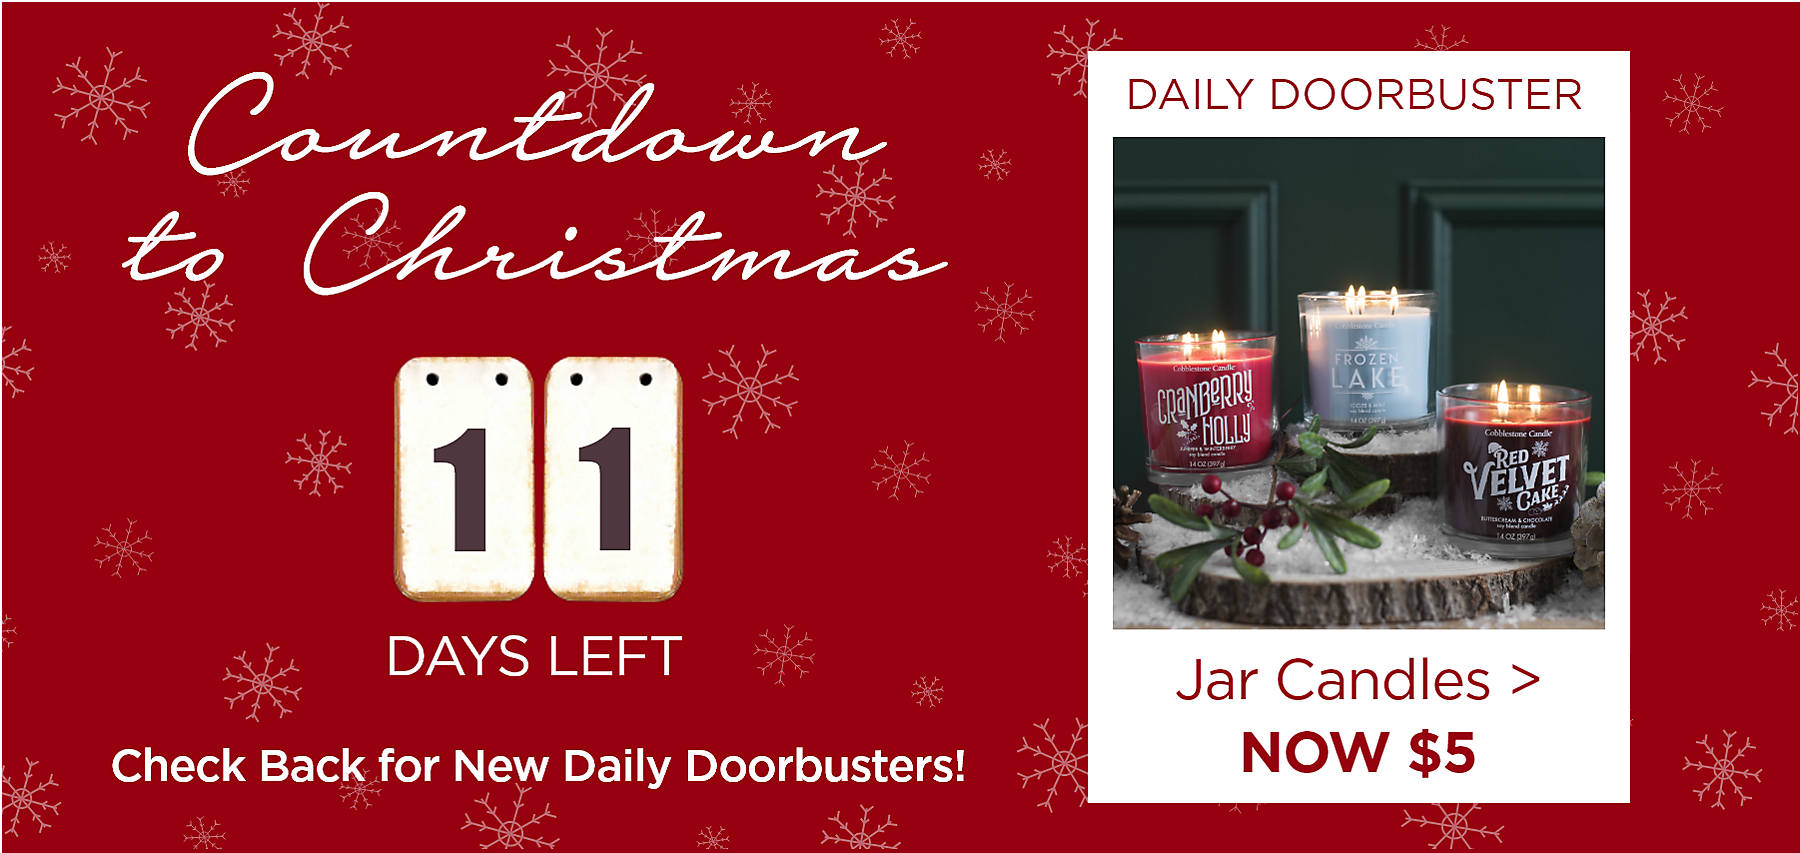 Countdown to Christmas 11 Days Left Daily Doorbuster Jar Candles $5 Check Back Daily for New Daily Doorbusters